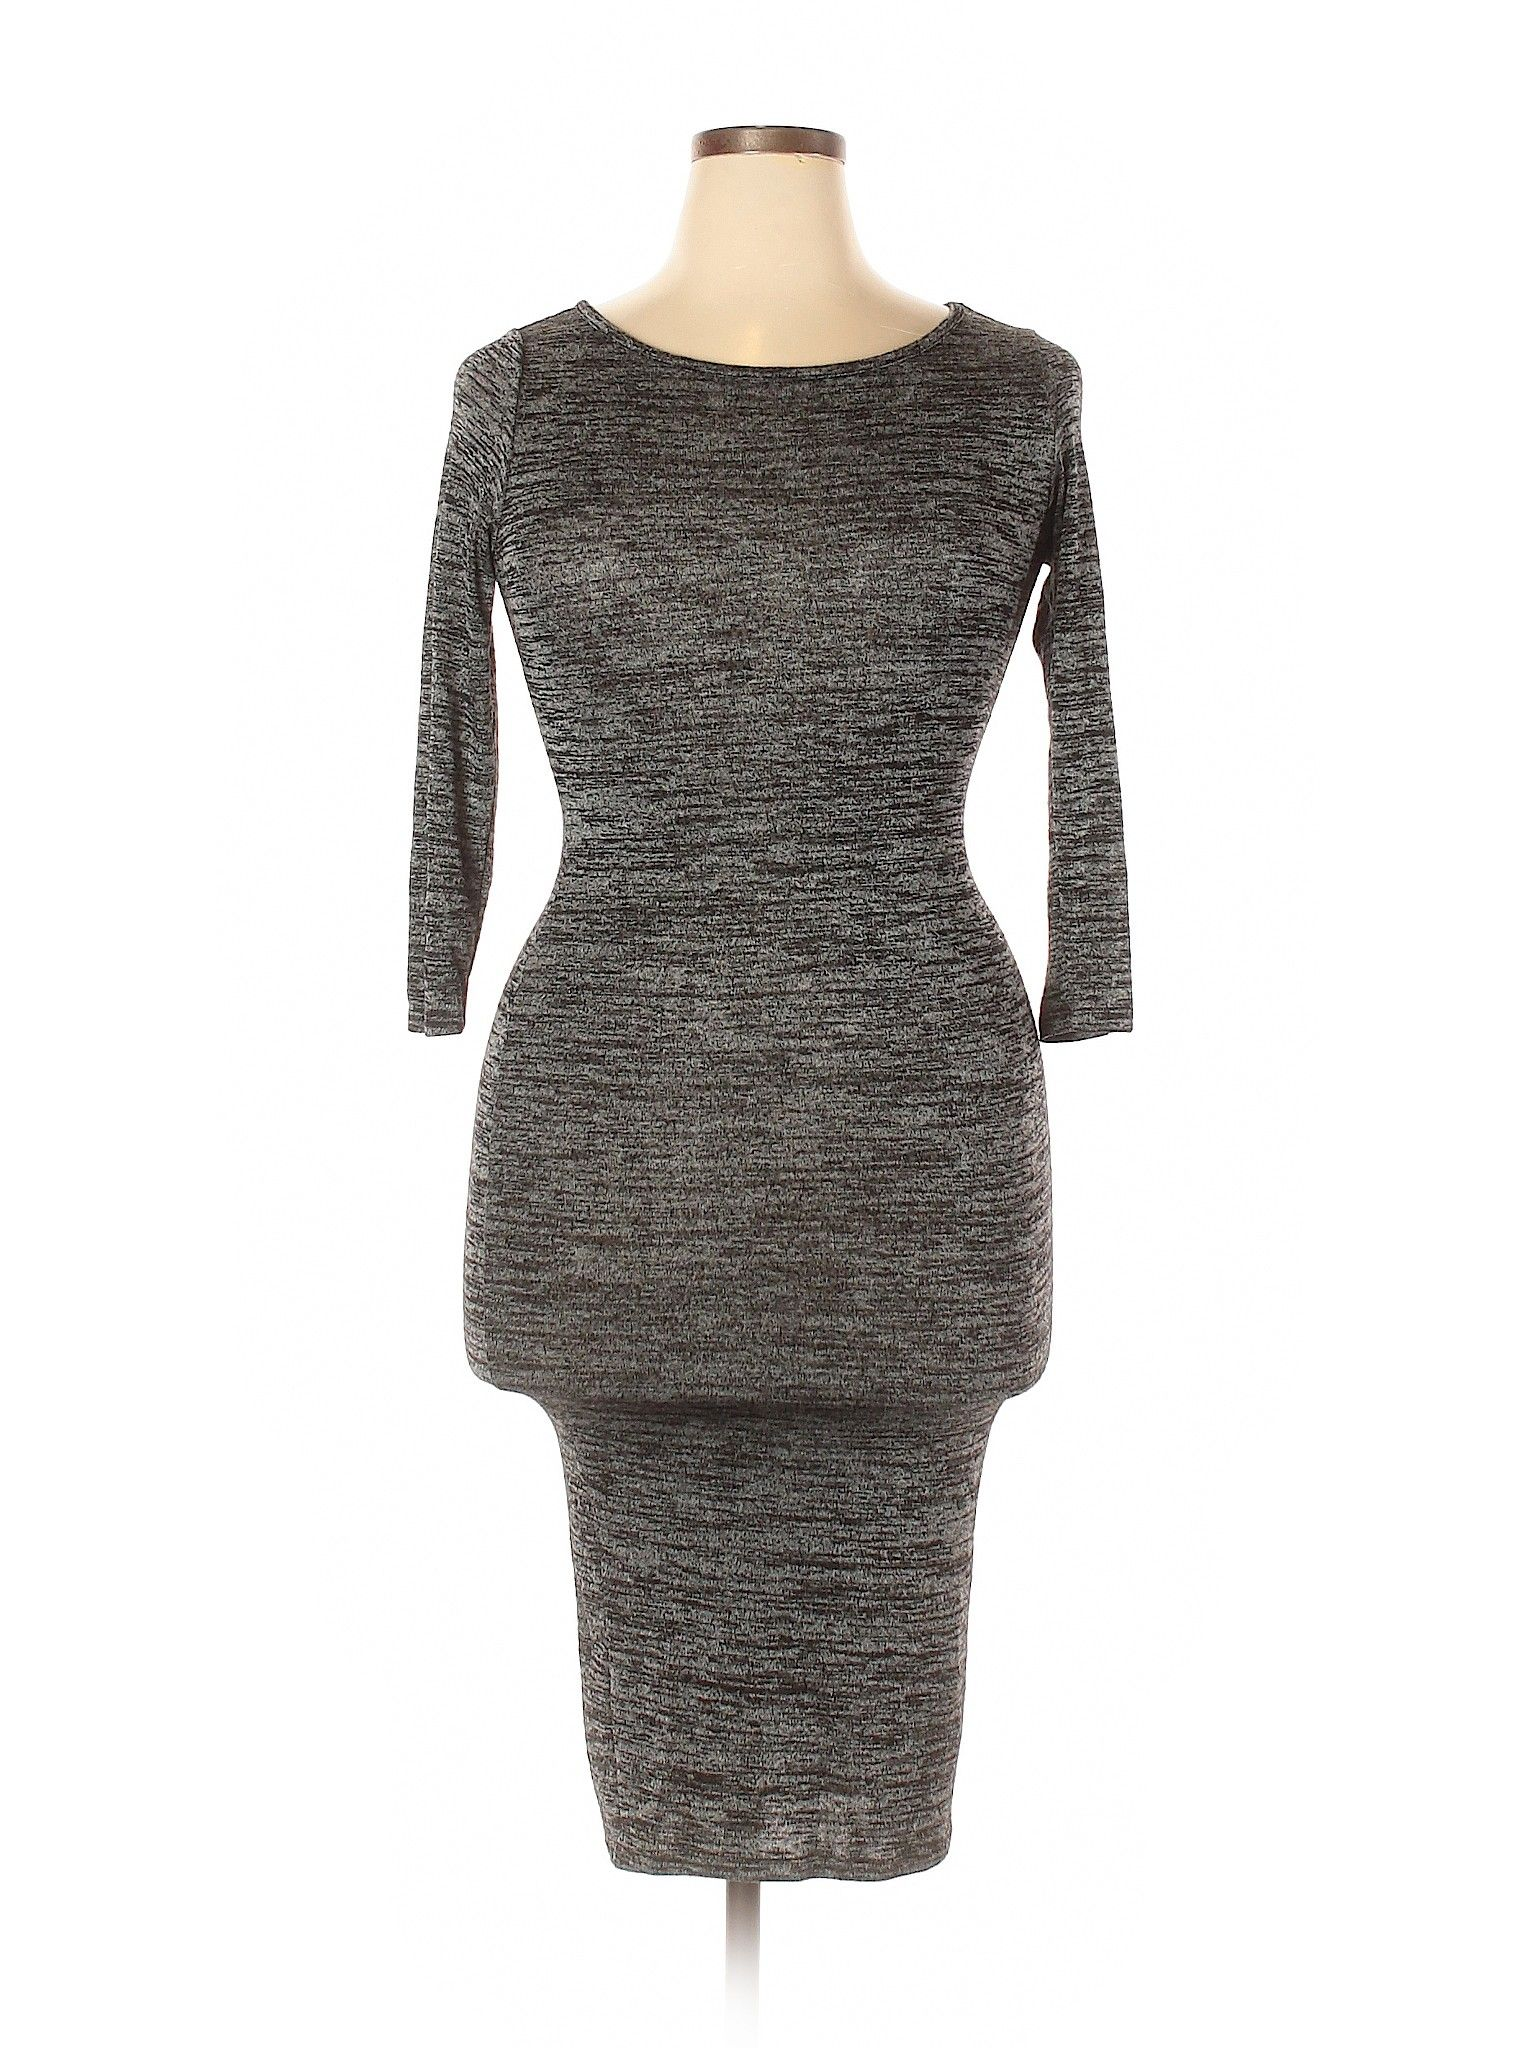 Forever 21 Casual Dress Party Gray Solid Dresses Used Size Large Sweater Dress Women Clothes Forever 21 Sweater Dress [ 2048 x 1536 Pixel ]